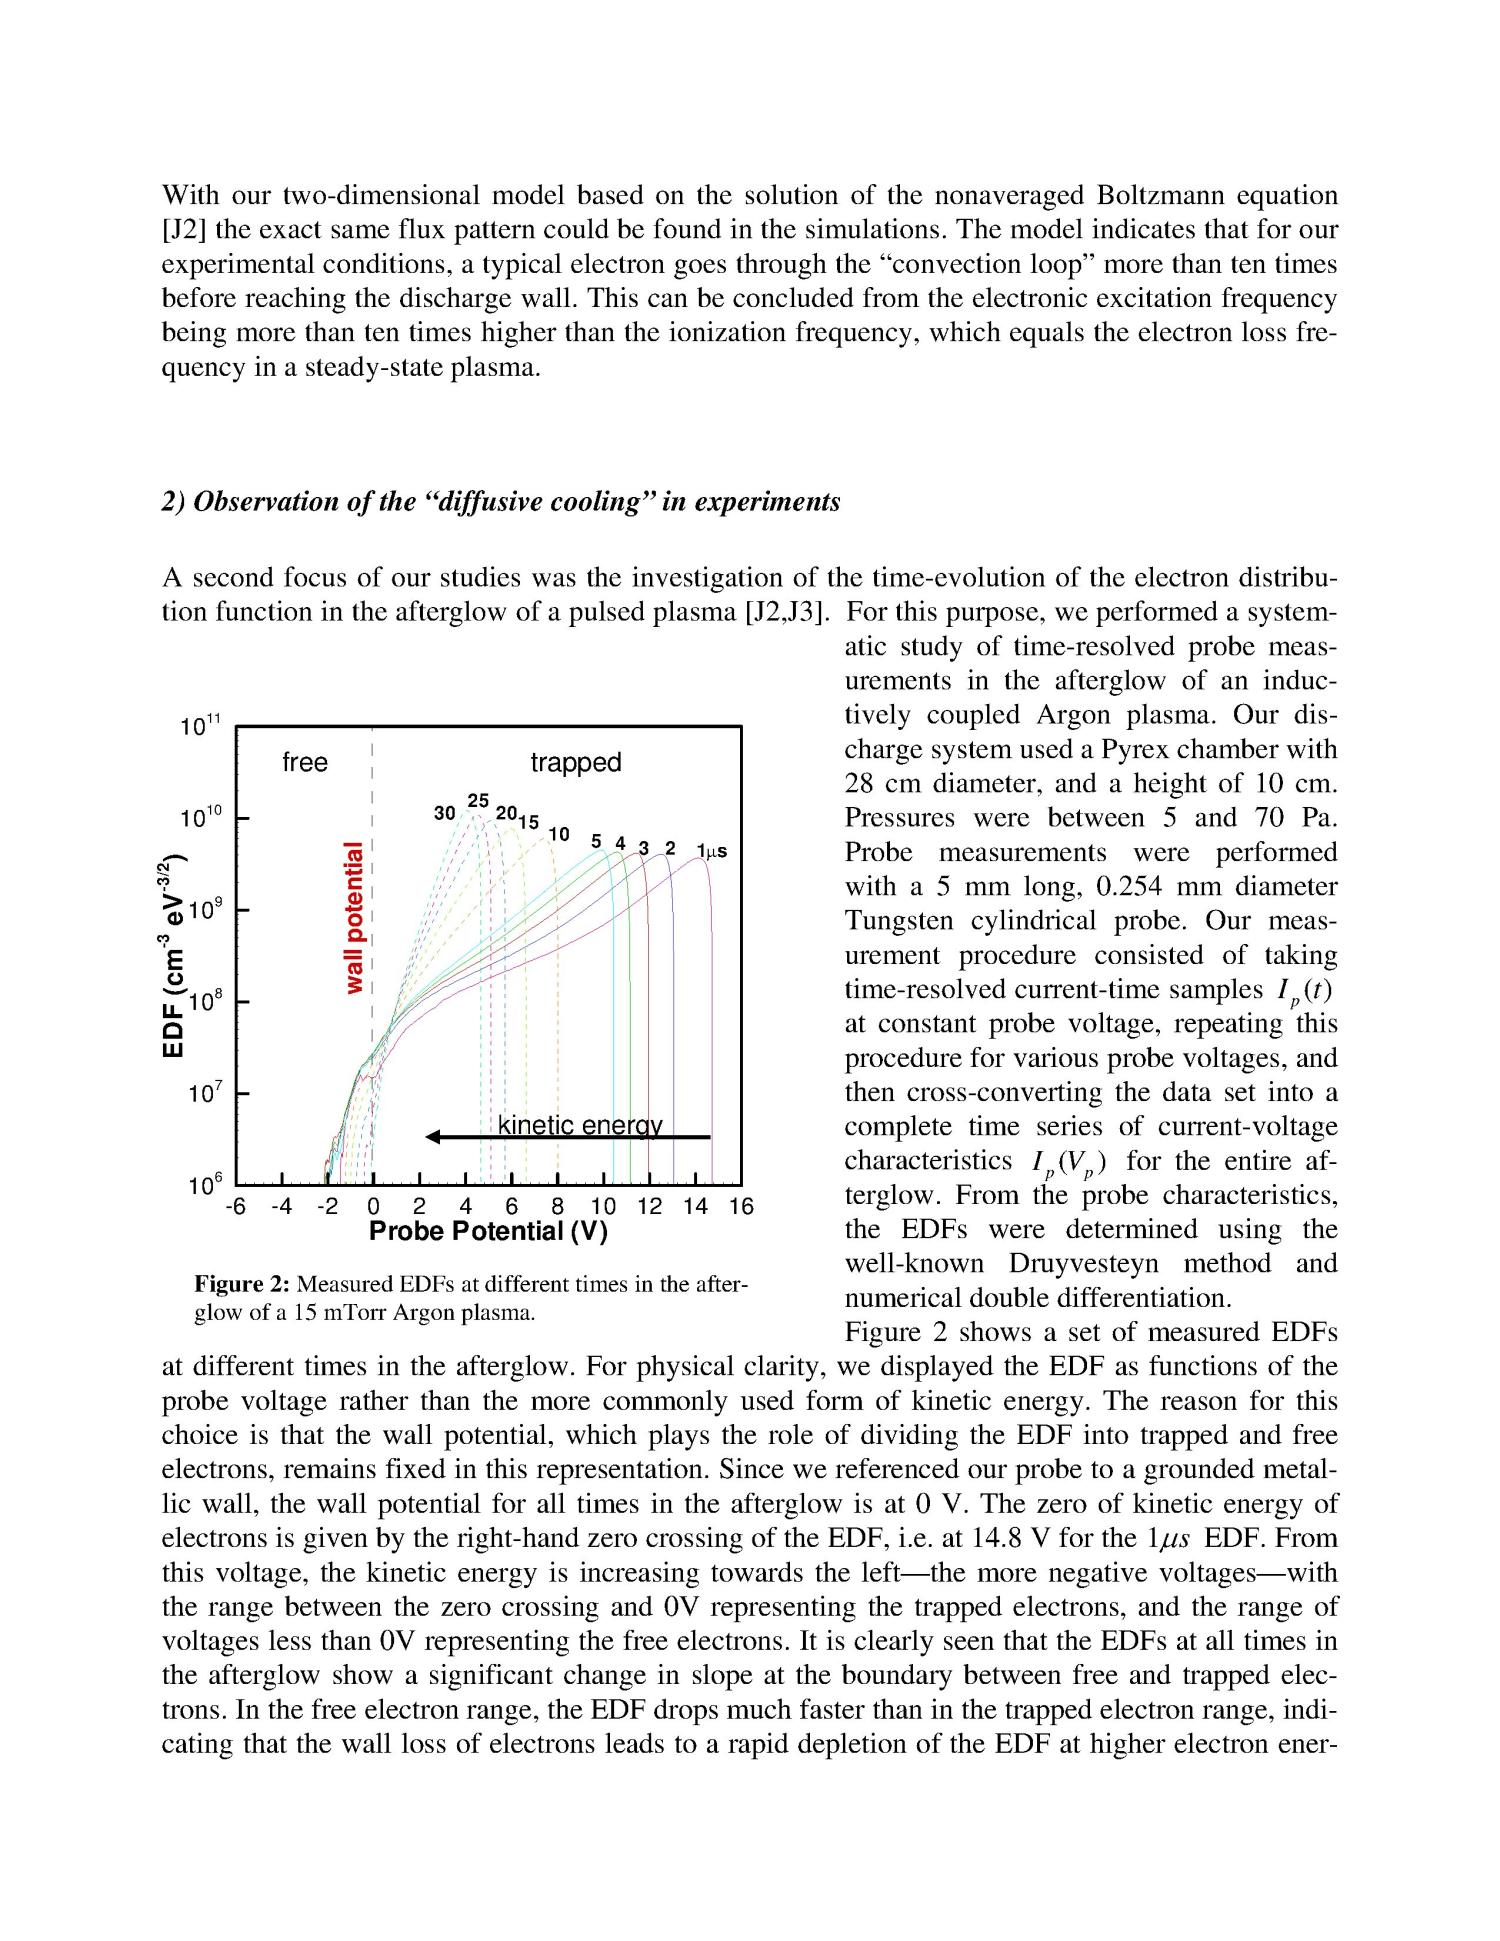 Final Report for Award DE-FG02-99ER54554 Kinetics of Electron Fluxes in Low-Pressure Nonthermal Plasmas                                                                                                      [Sequence #]: 3 of 6